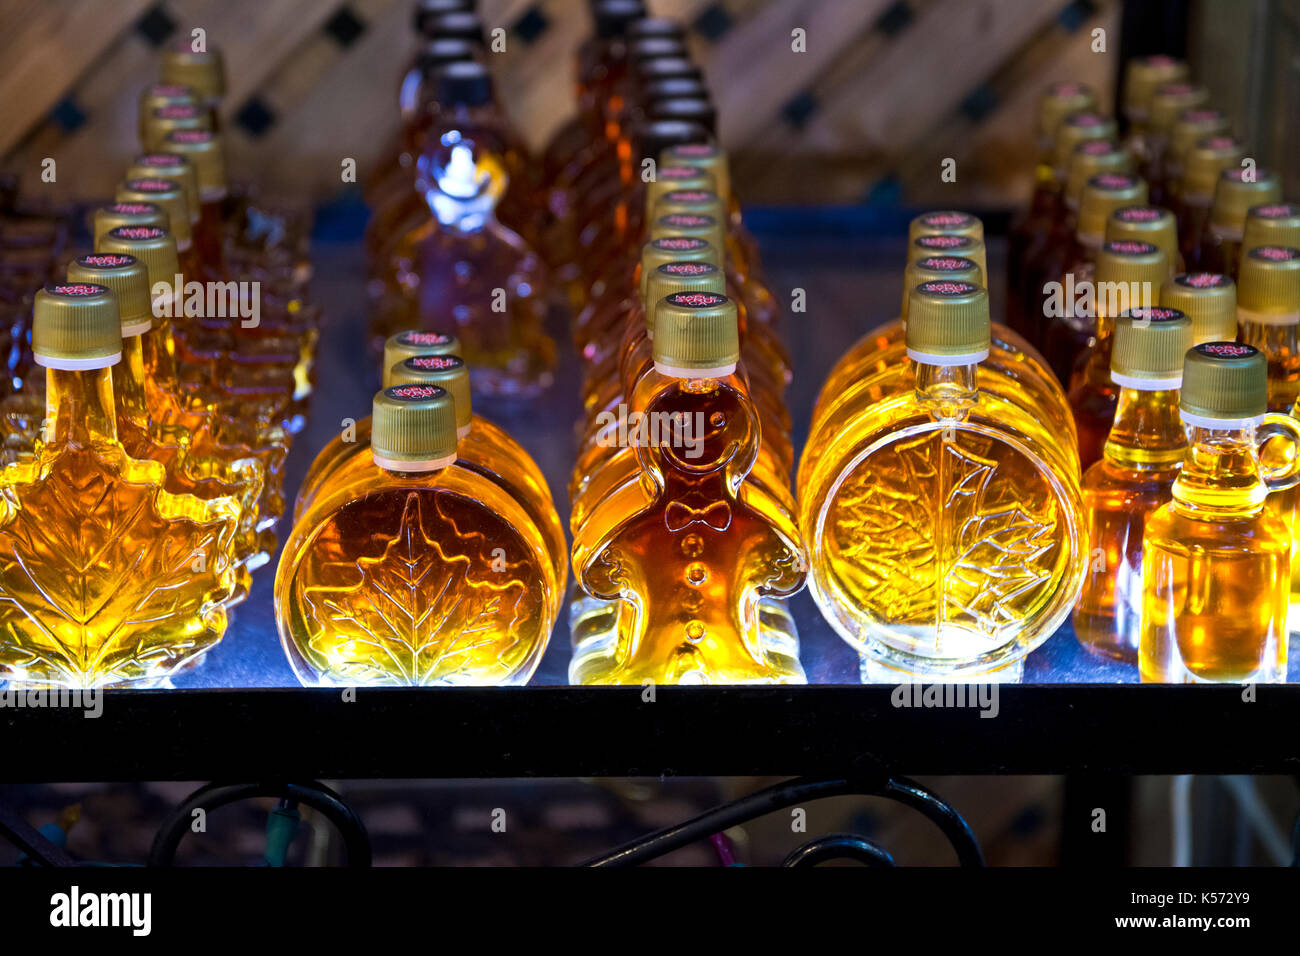 interesting-shapes-of-maple-syrup-bottles-for-sale-from-a-vendor-in-K572Y9.jpg